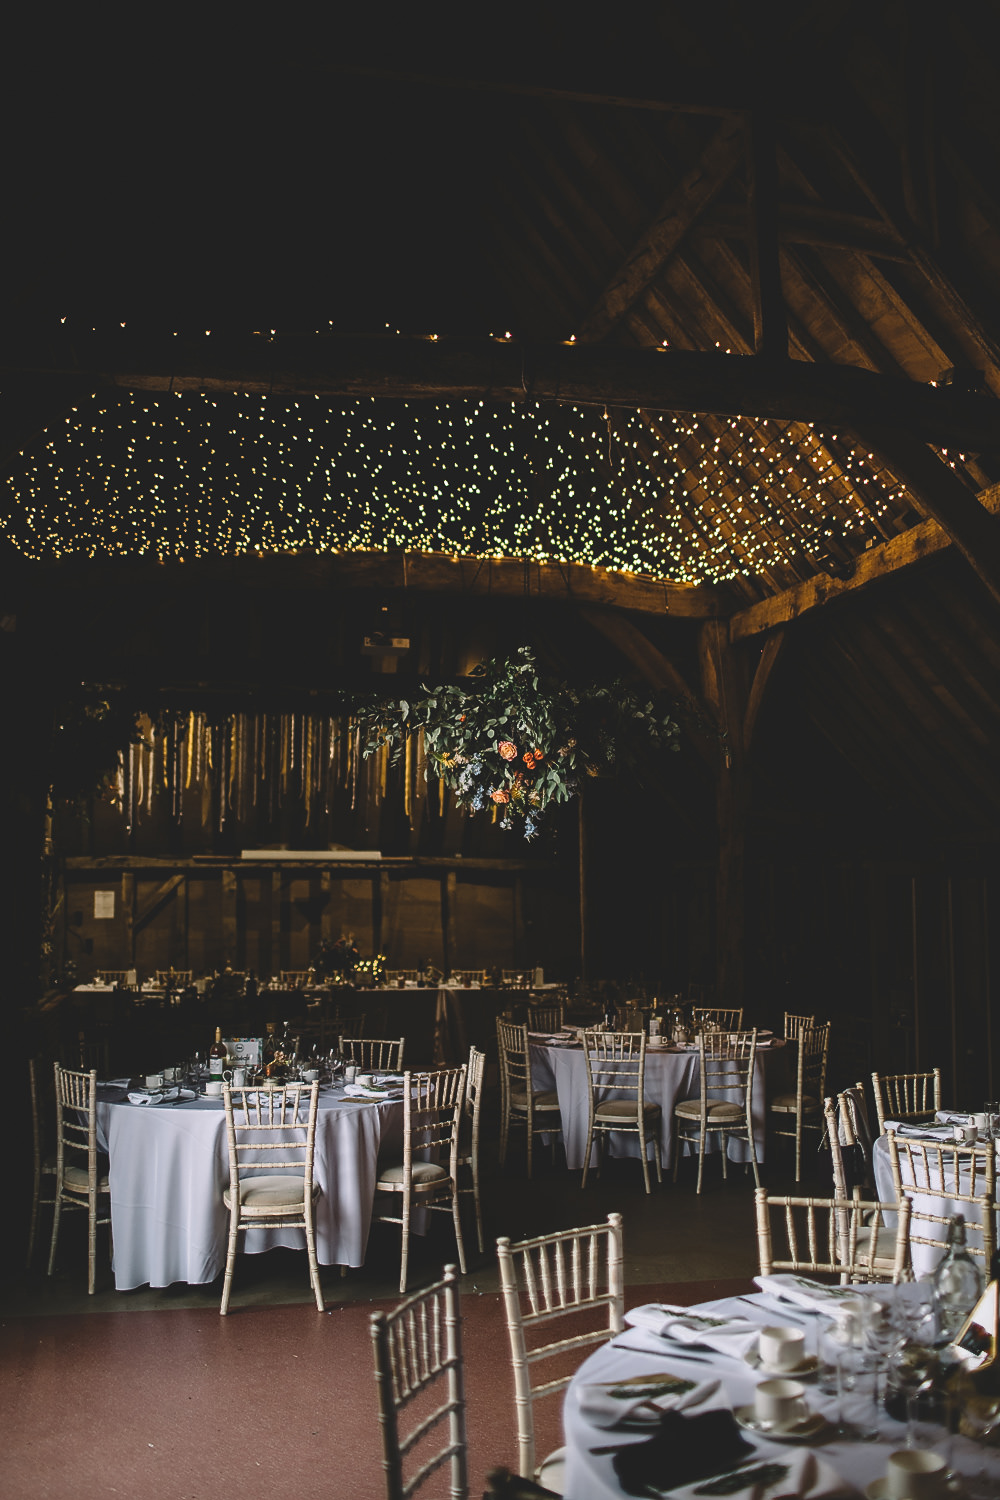 Hanging Suspended Flowers Greenery Rose Orange Coral Decor Fairy Light Canopy Gilbert Whites House Barn Wedding Carrie Lavers Photography